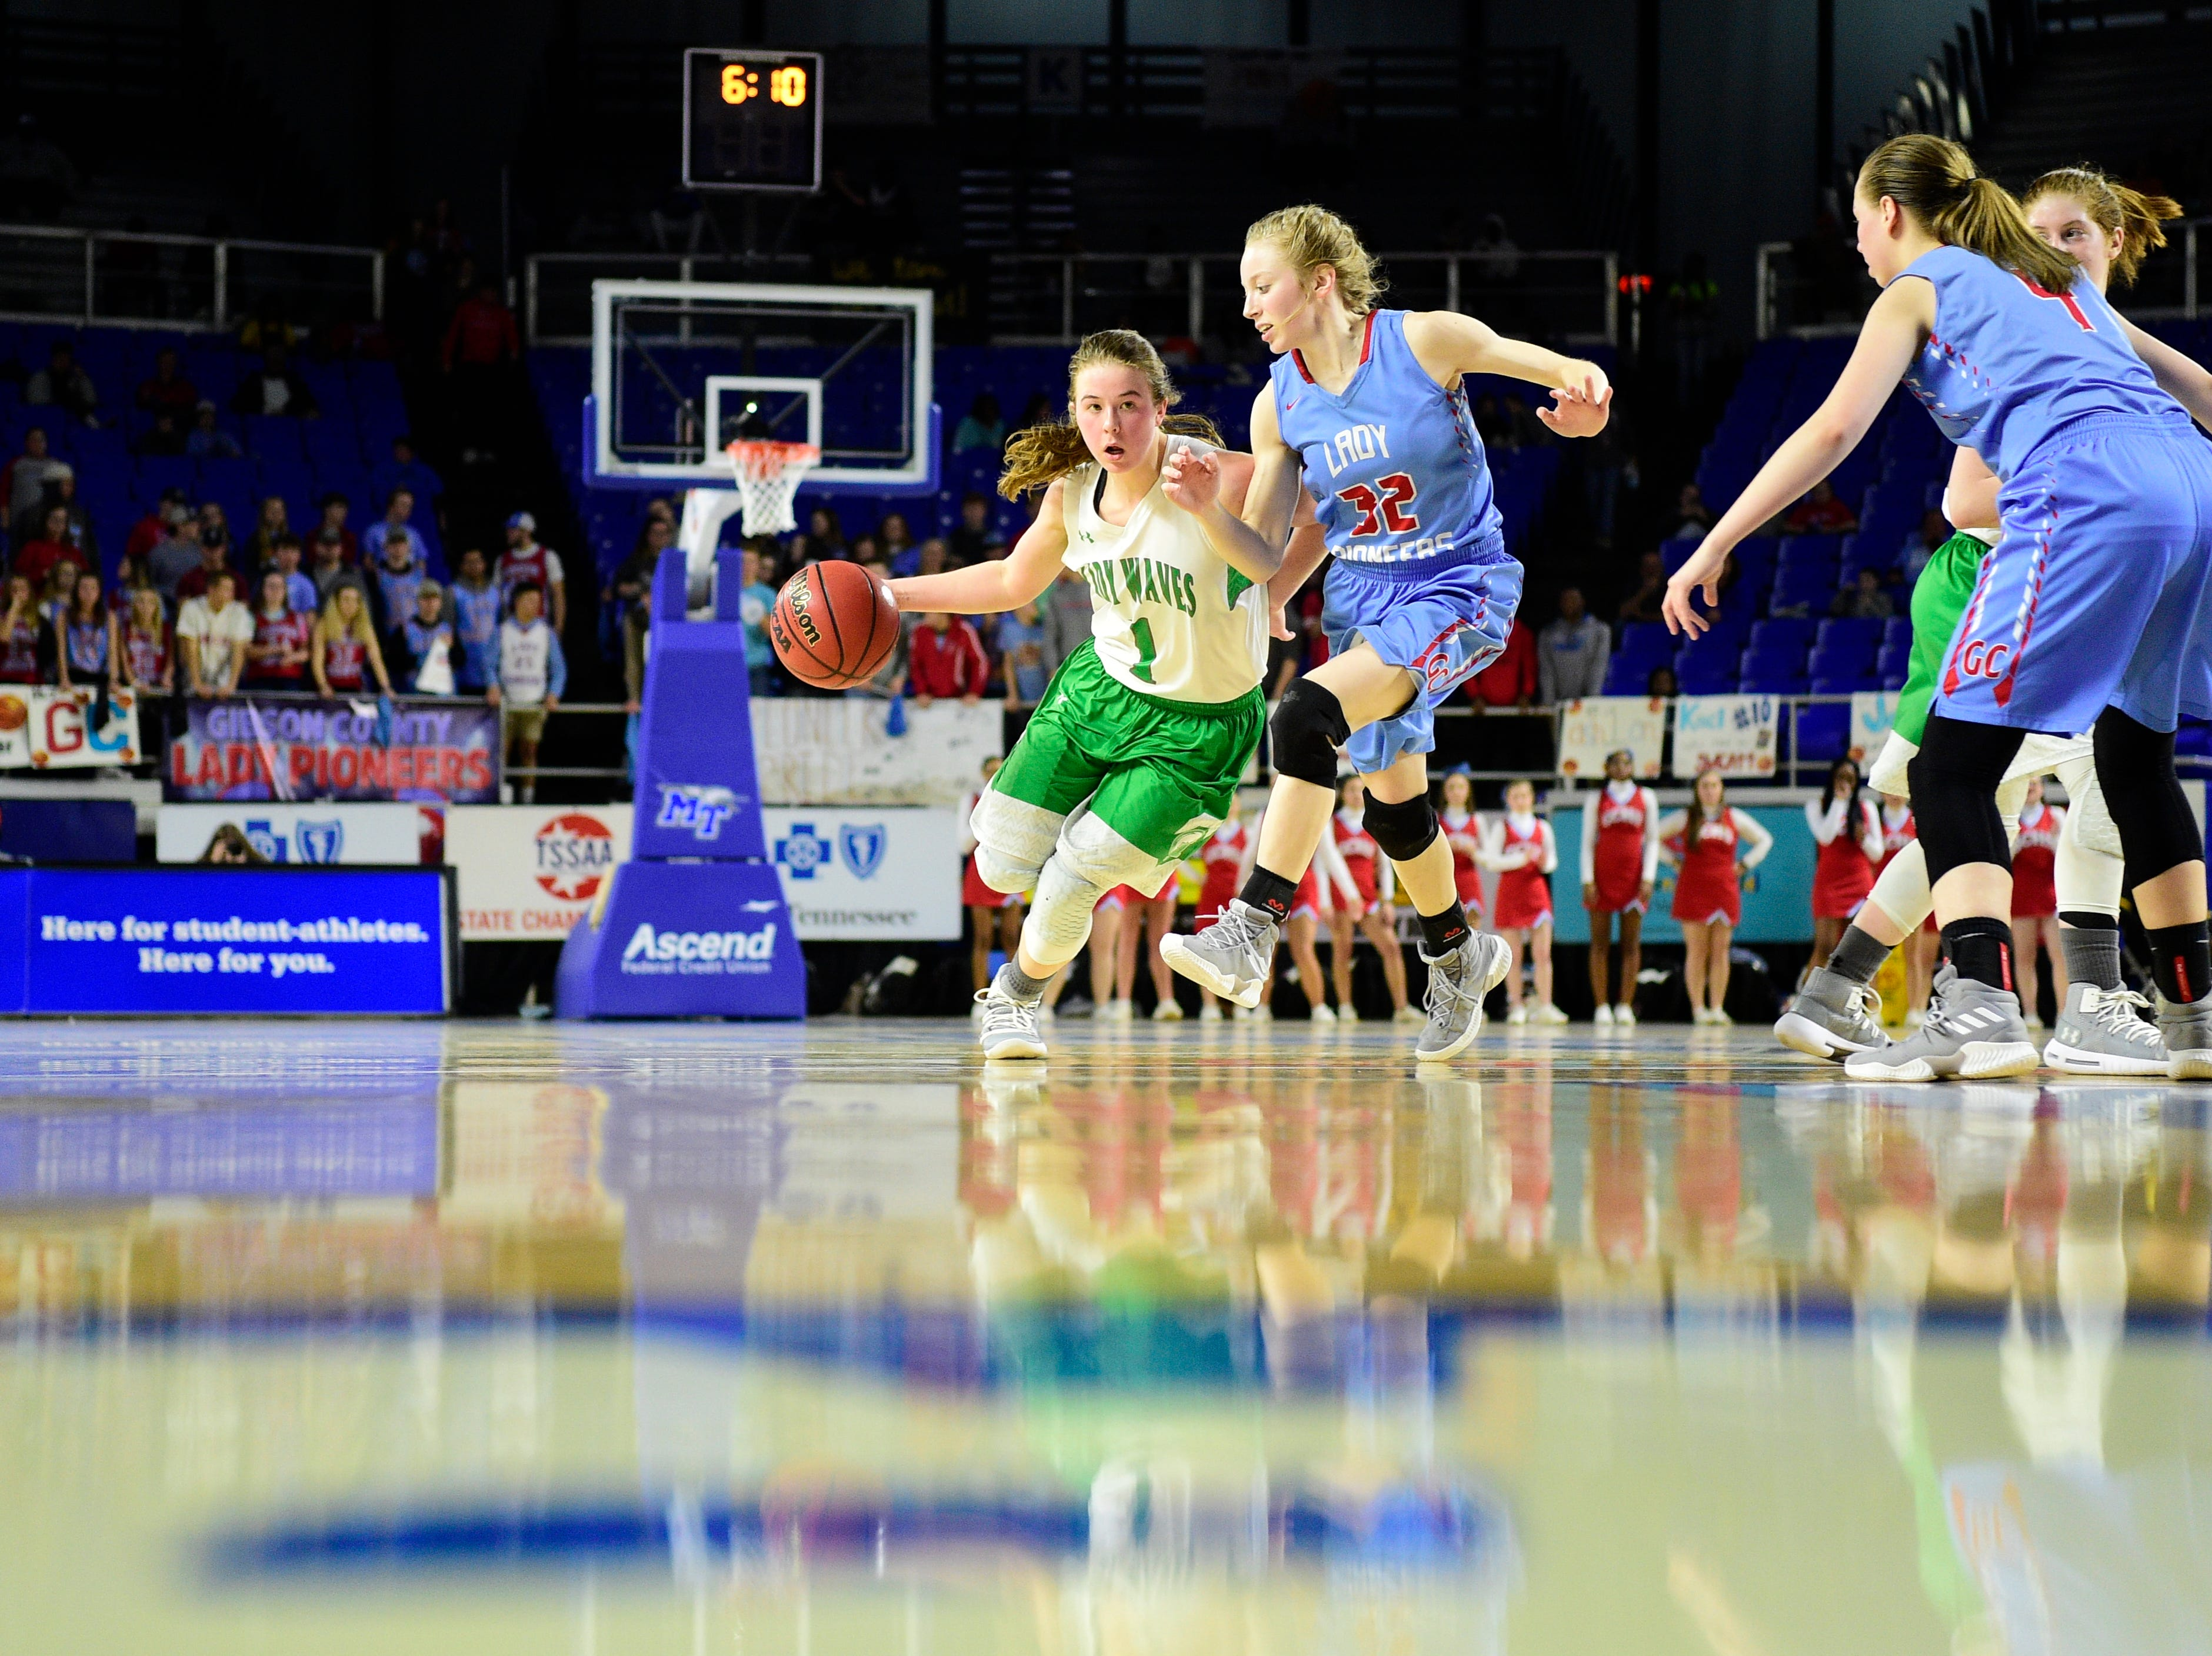 Midway's Caitlyn Ross (1) dribbles past Gibson County's K.J. White (32) during a game between Midway and Gibson County at the TSSAA girls state tournament at the Murphy Center in Murfreesboro, Tennessee on Friday, March 8, 2019.